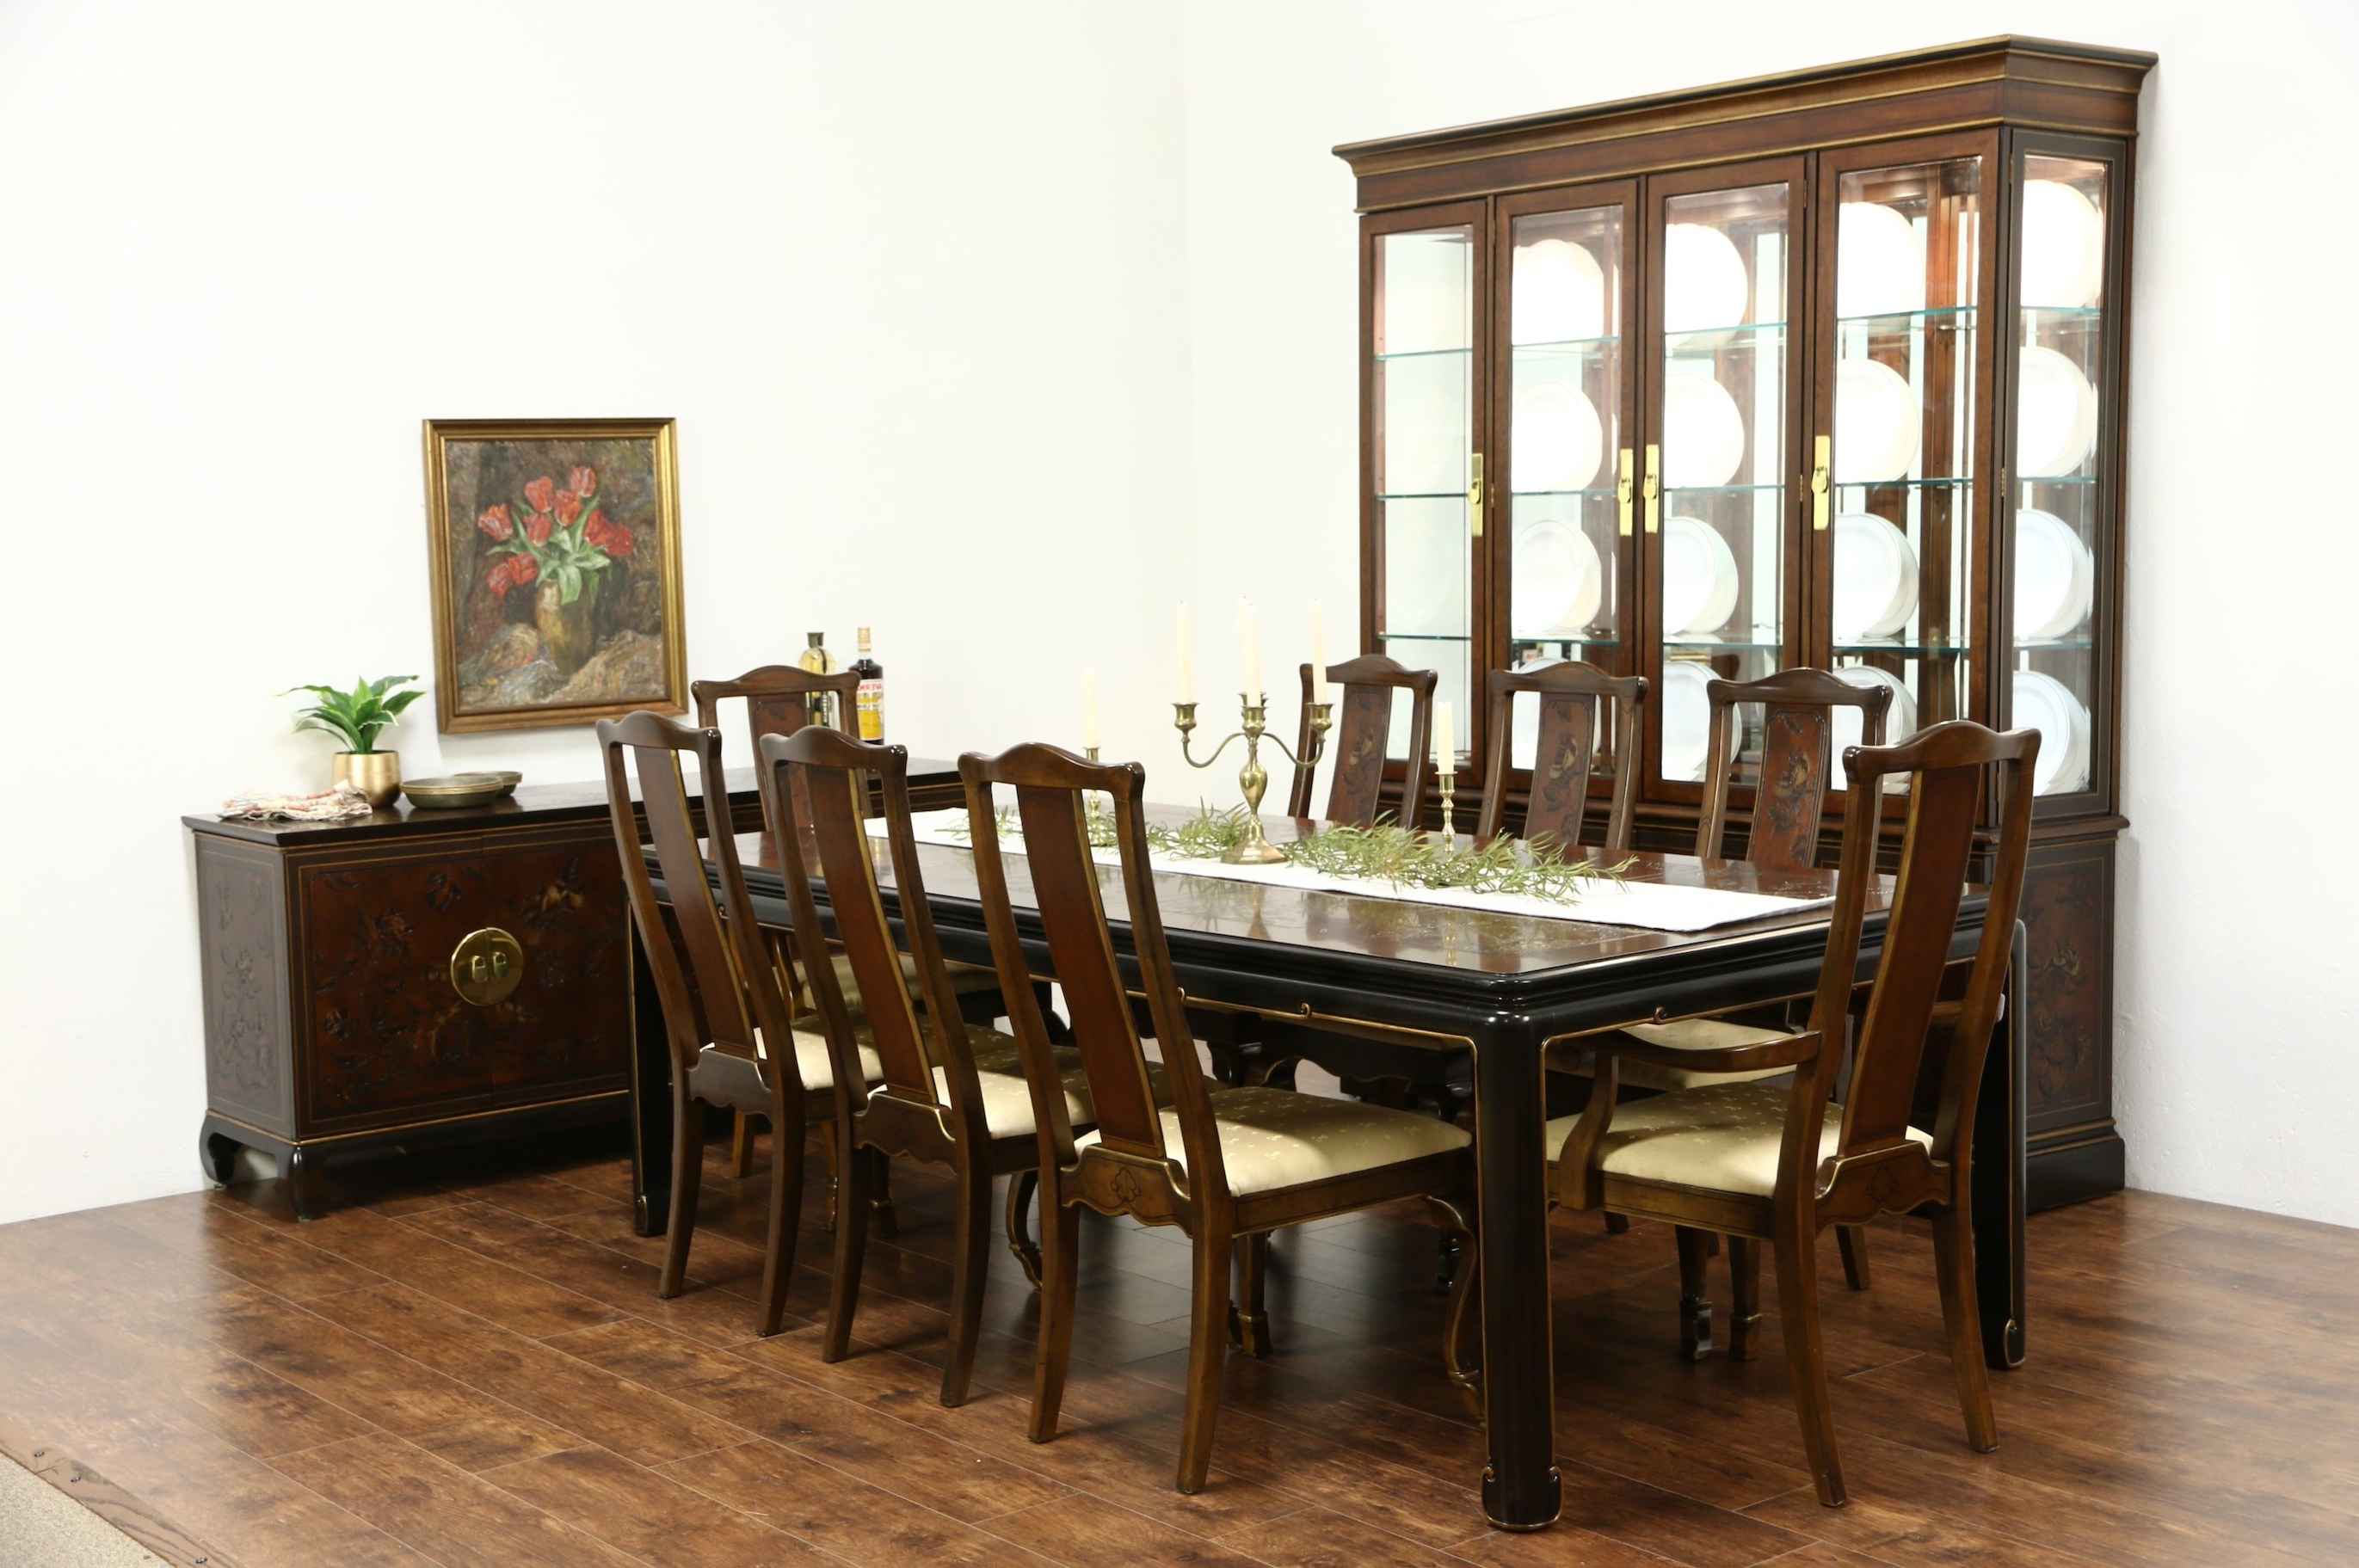 Sold – Drexel Heritage Connoisseur Chinese Motif Vintage Dining Set Intended For Recent 8 Chairs Dining Sets (View 5 of 25)